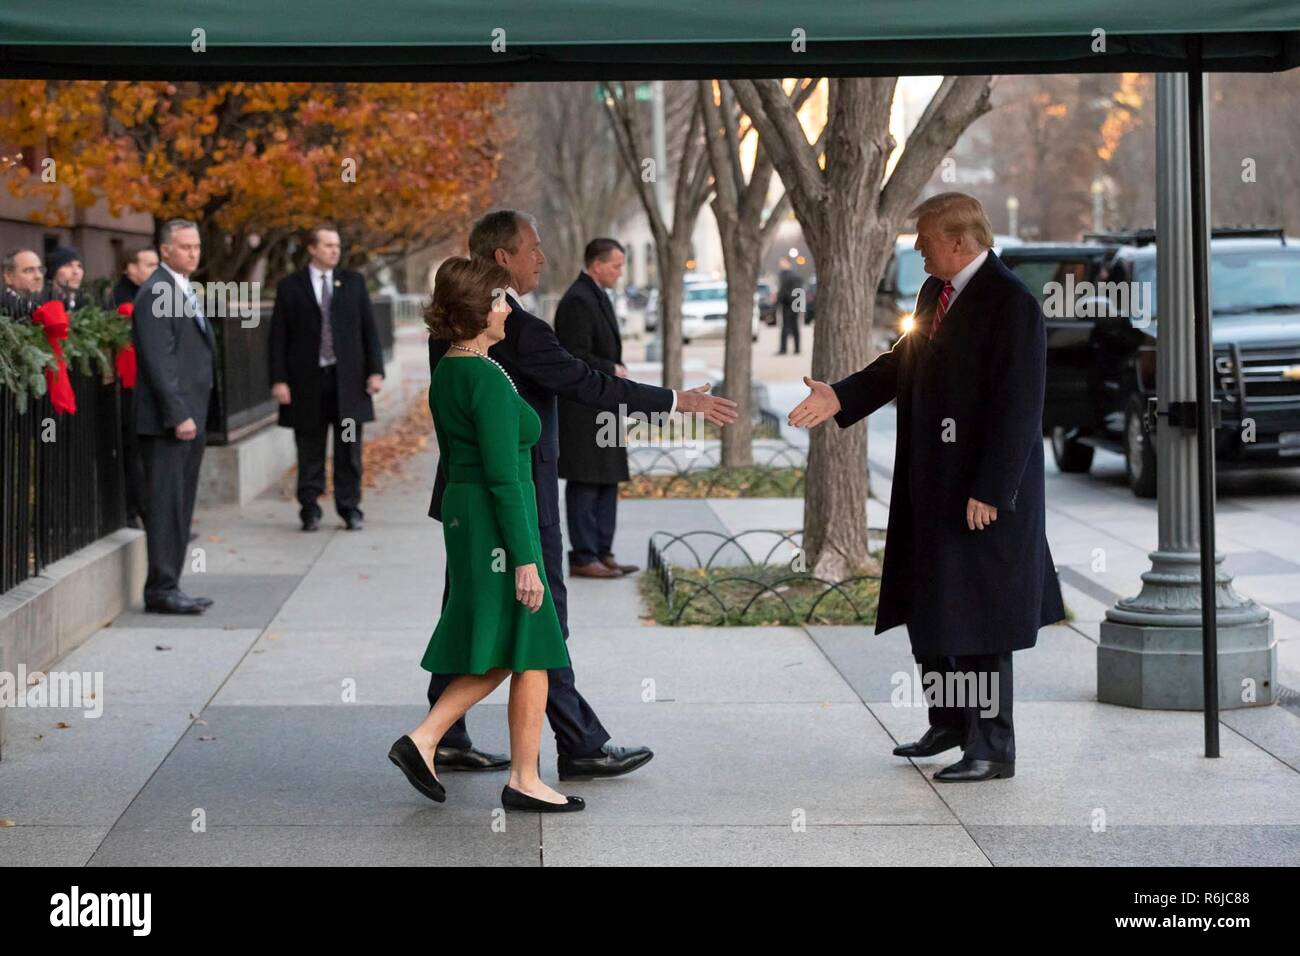 Washington DC, USA. 4th December, 2018. U.S President Donald Trump reaches out to greet former President George W. Bush and former First Lady Laura Bush outside Blair House December 4, 2018 in Washington, DC. Bush is stay at Blair House to attend the memorial service for his father the late President George H.W. Bush. Credit: Planetpix/Alamy Live News - Stock Image